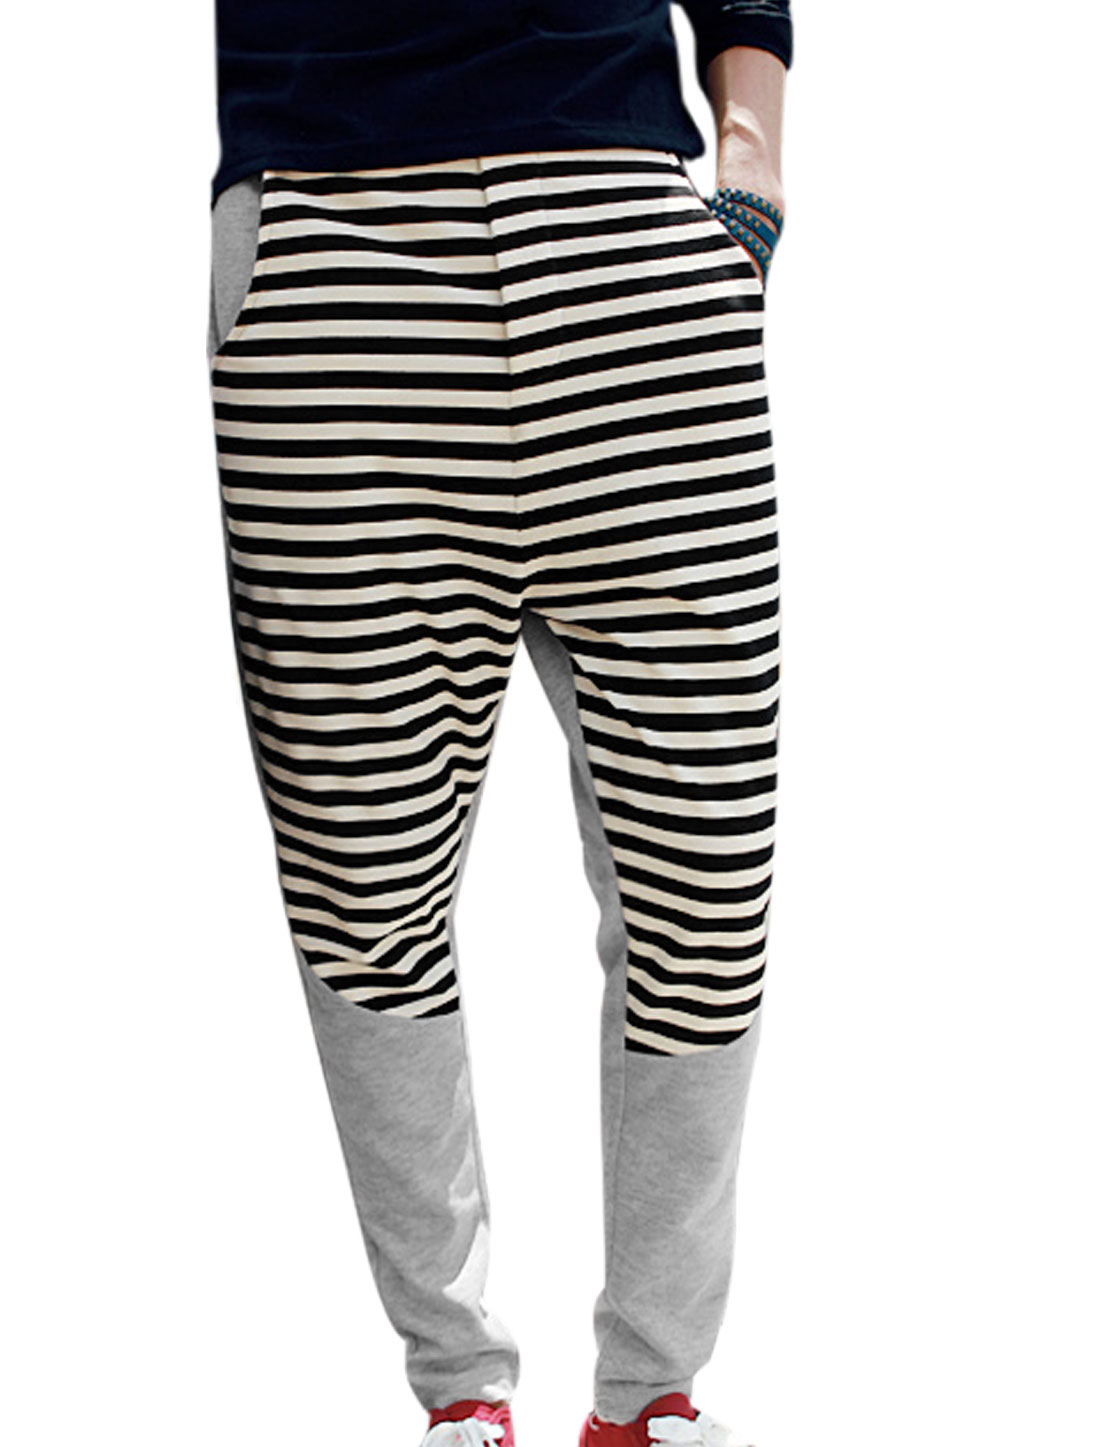 Men Elastic Waist w Drawstring Stripes Splicing Leisure Pants Gray W30